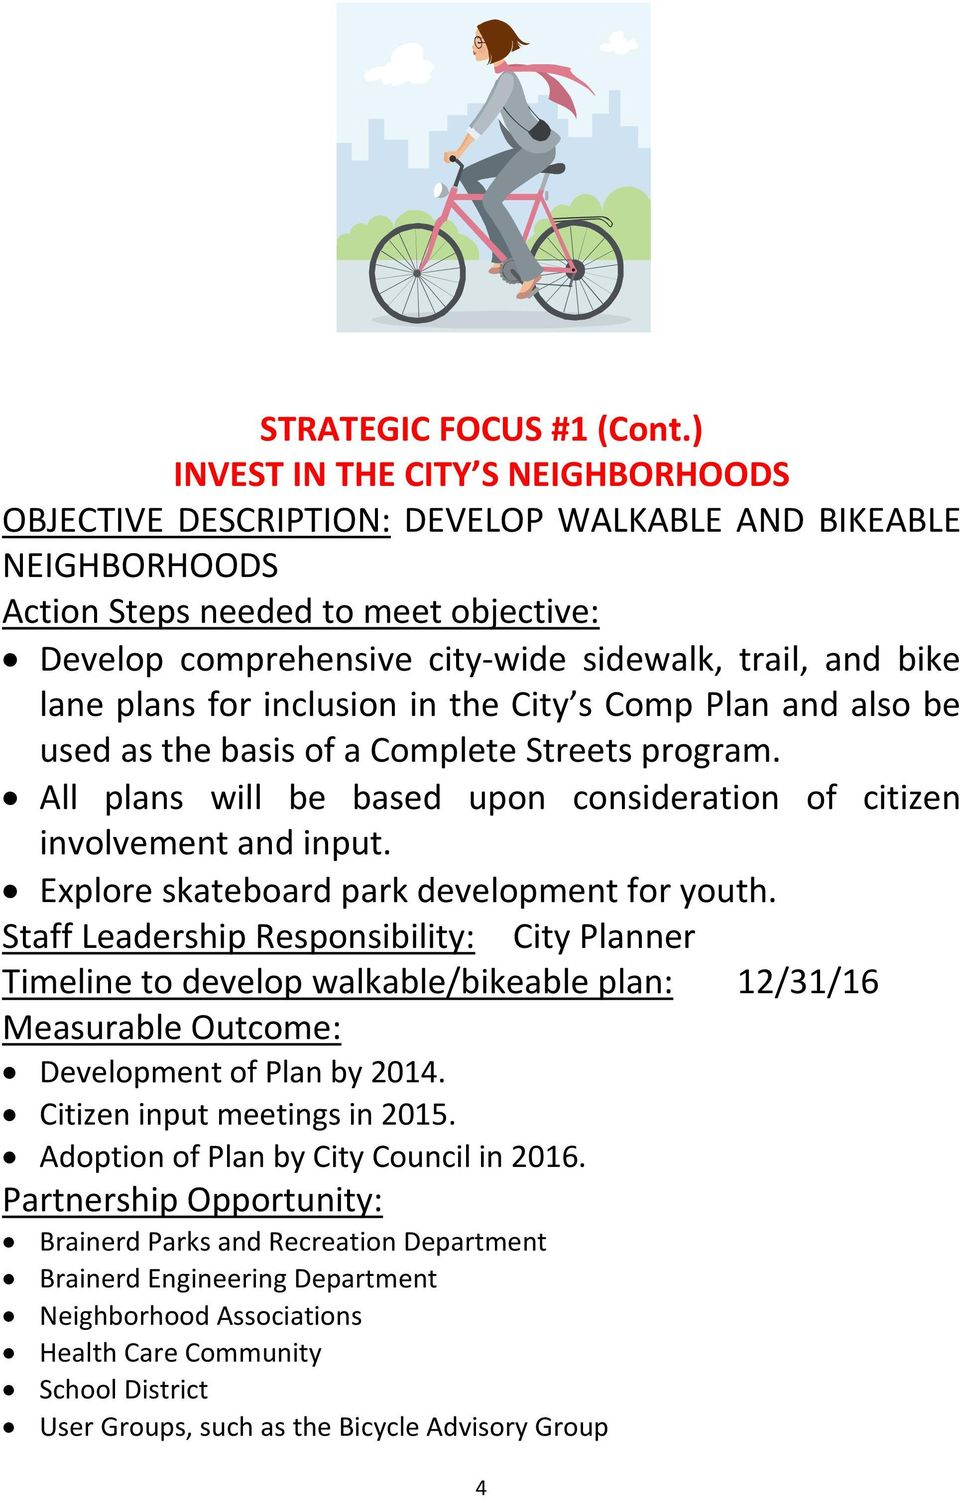 s Comp Plan and also be used as the basis of a Complete Streets program. All plans will be based upon consideration of citizen involvement and input. Explore skateboard park development for youth.